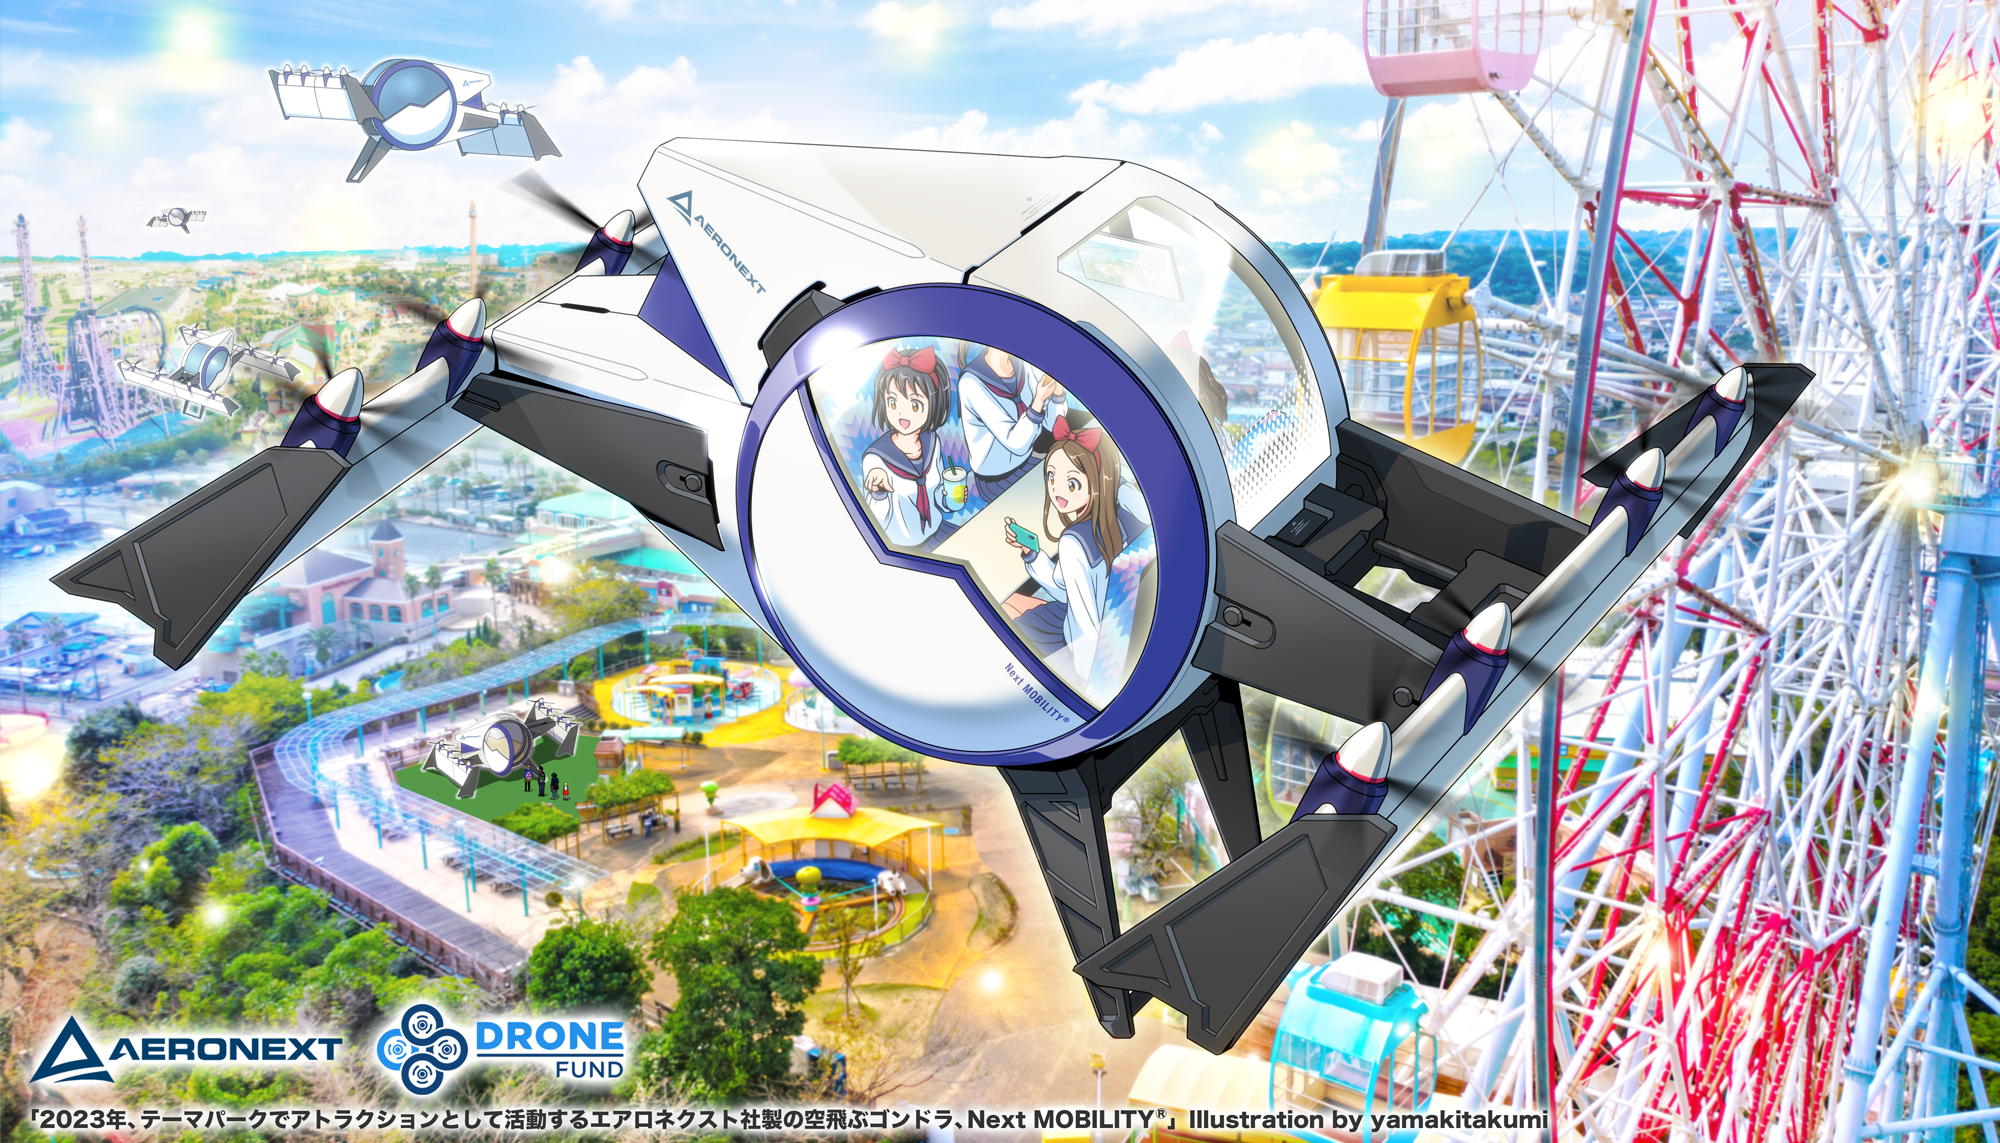 """Flying Gondola"" in amusement park (an image in the future)"